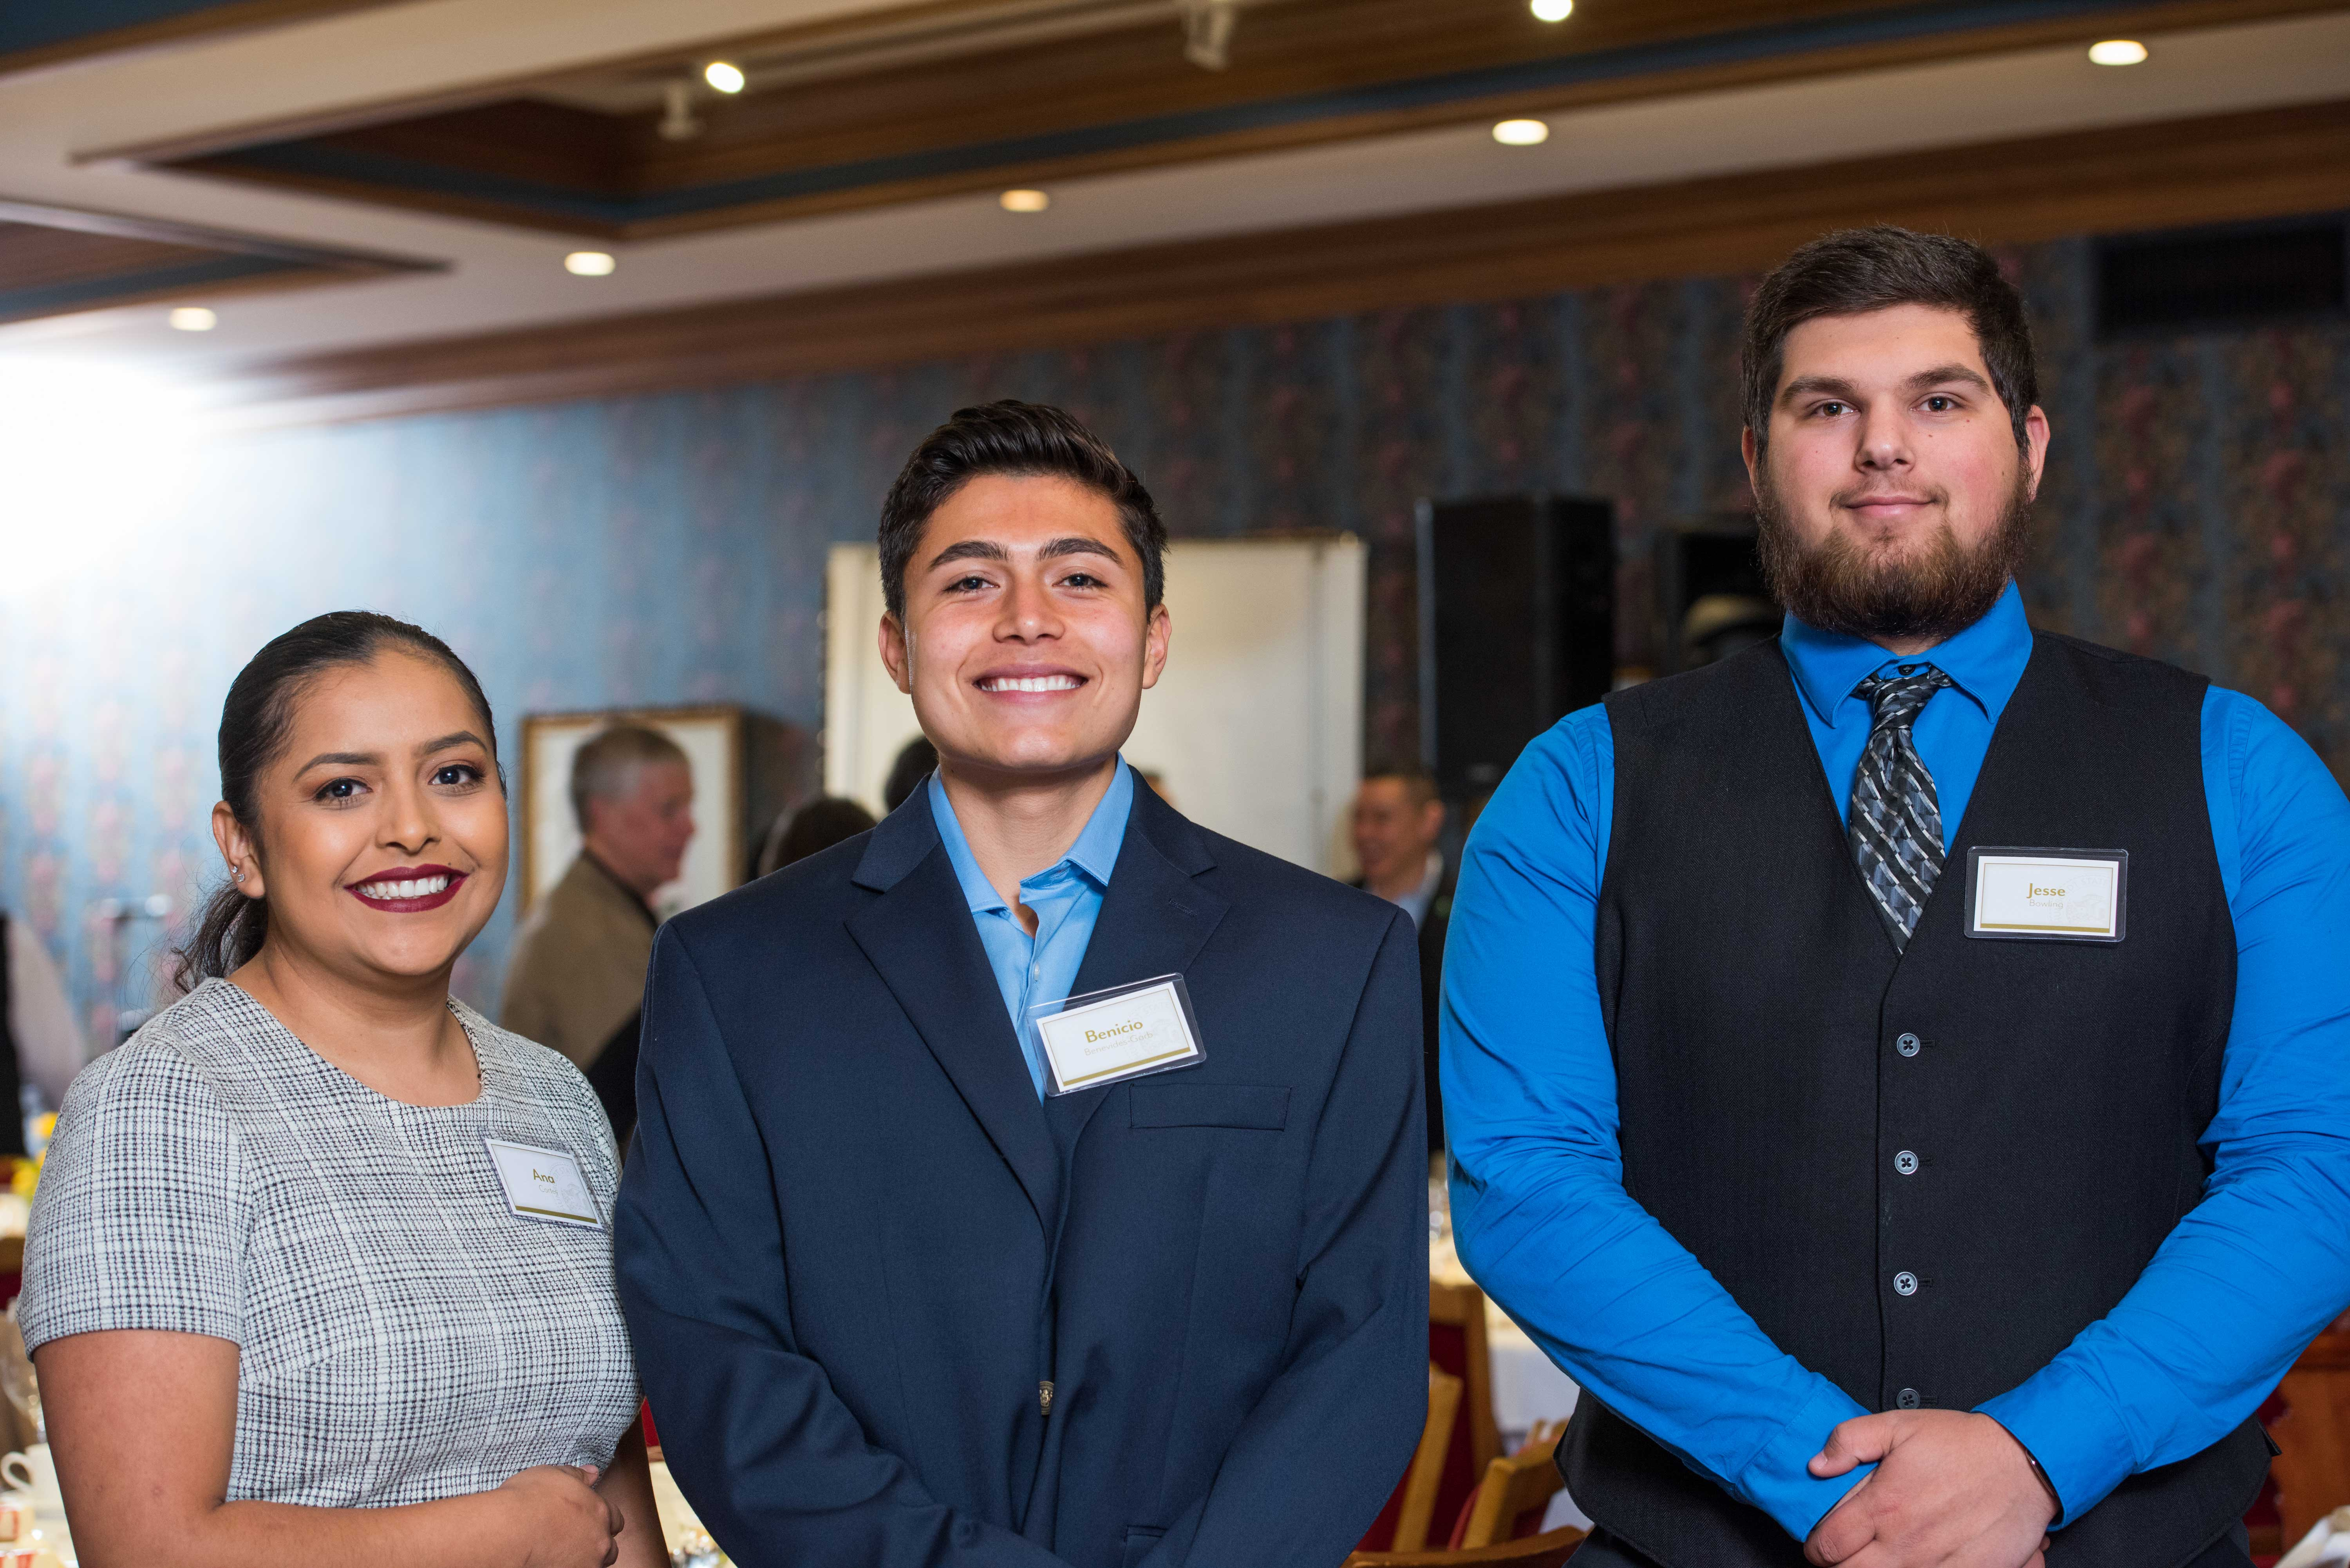 At an event sponsored by the Humboldt State University Foundation, HSU students Ana Cortes (left), Benicio Benevides-Garb (center), and Jesse Bowling (right) shared how scholarships supported their college dreams.